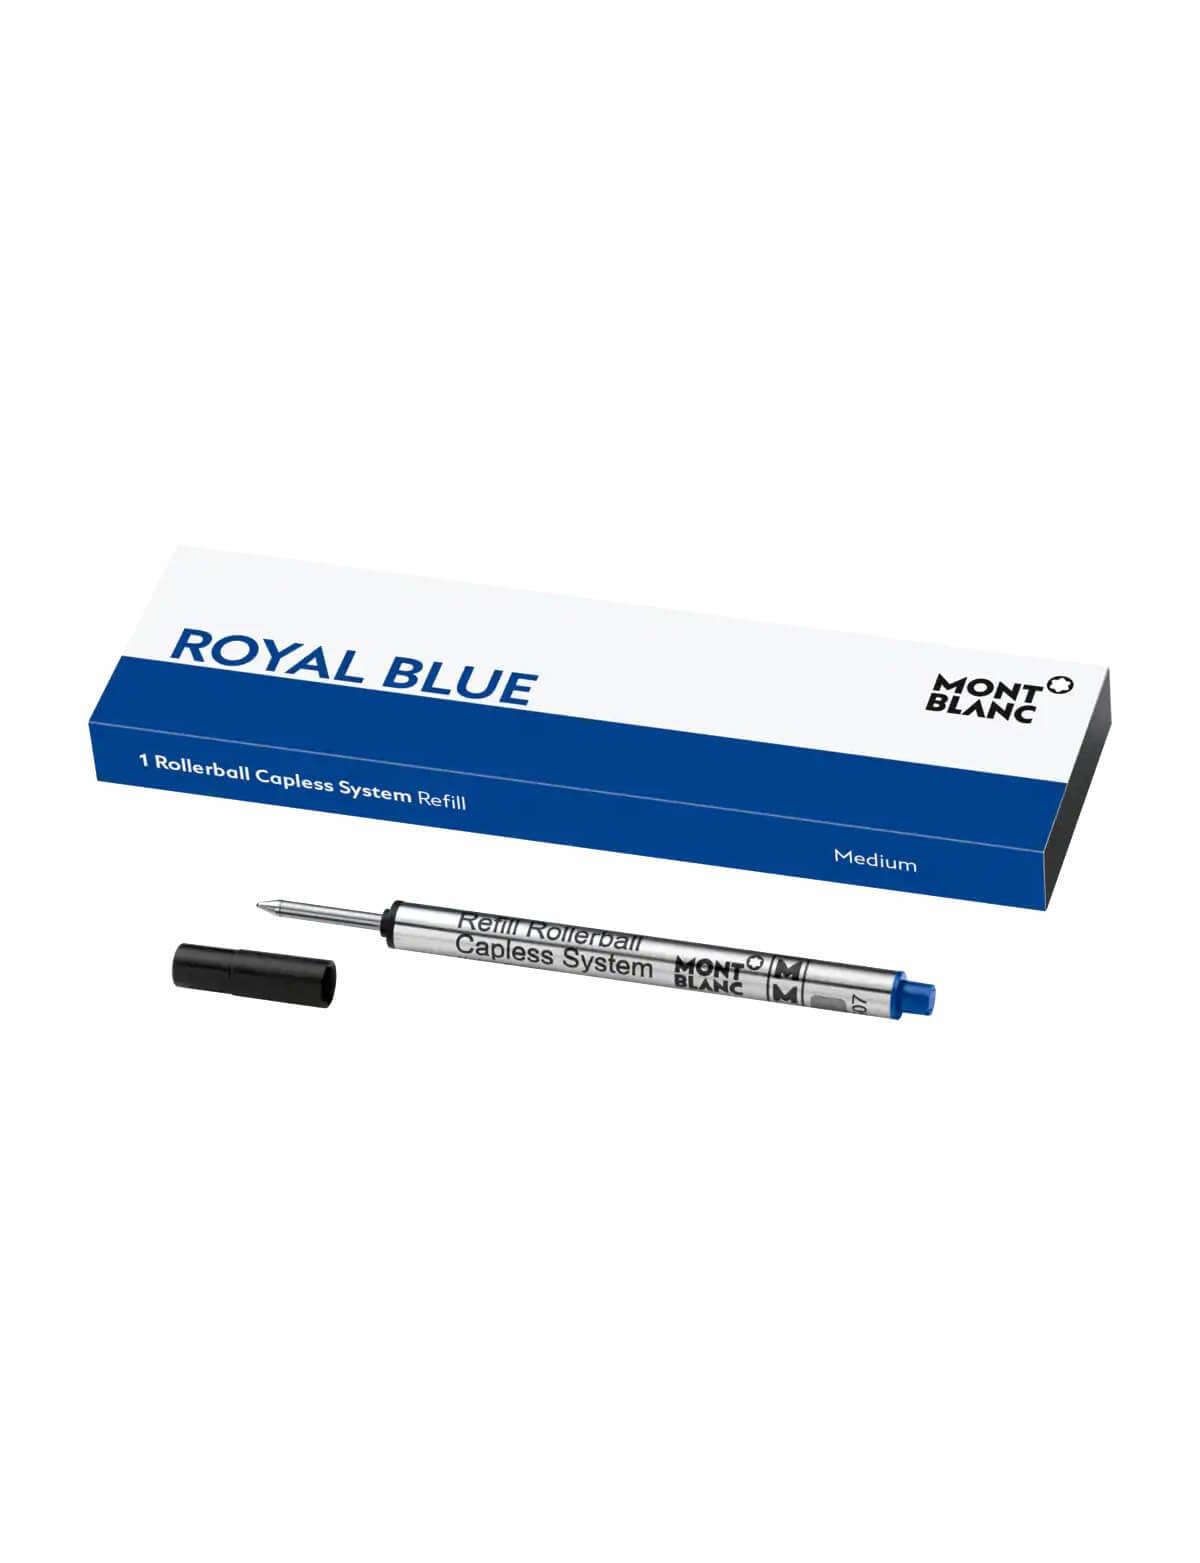 Montblanc Refill`s M, Rollerball Refills